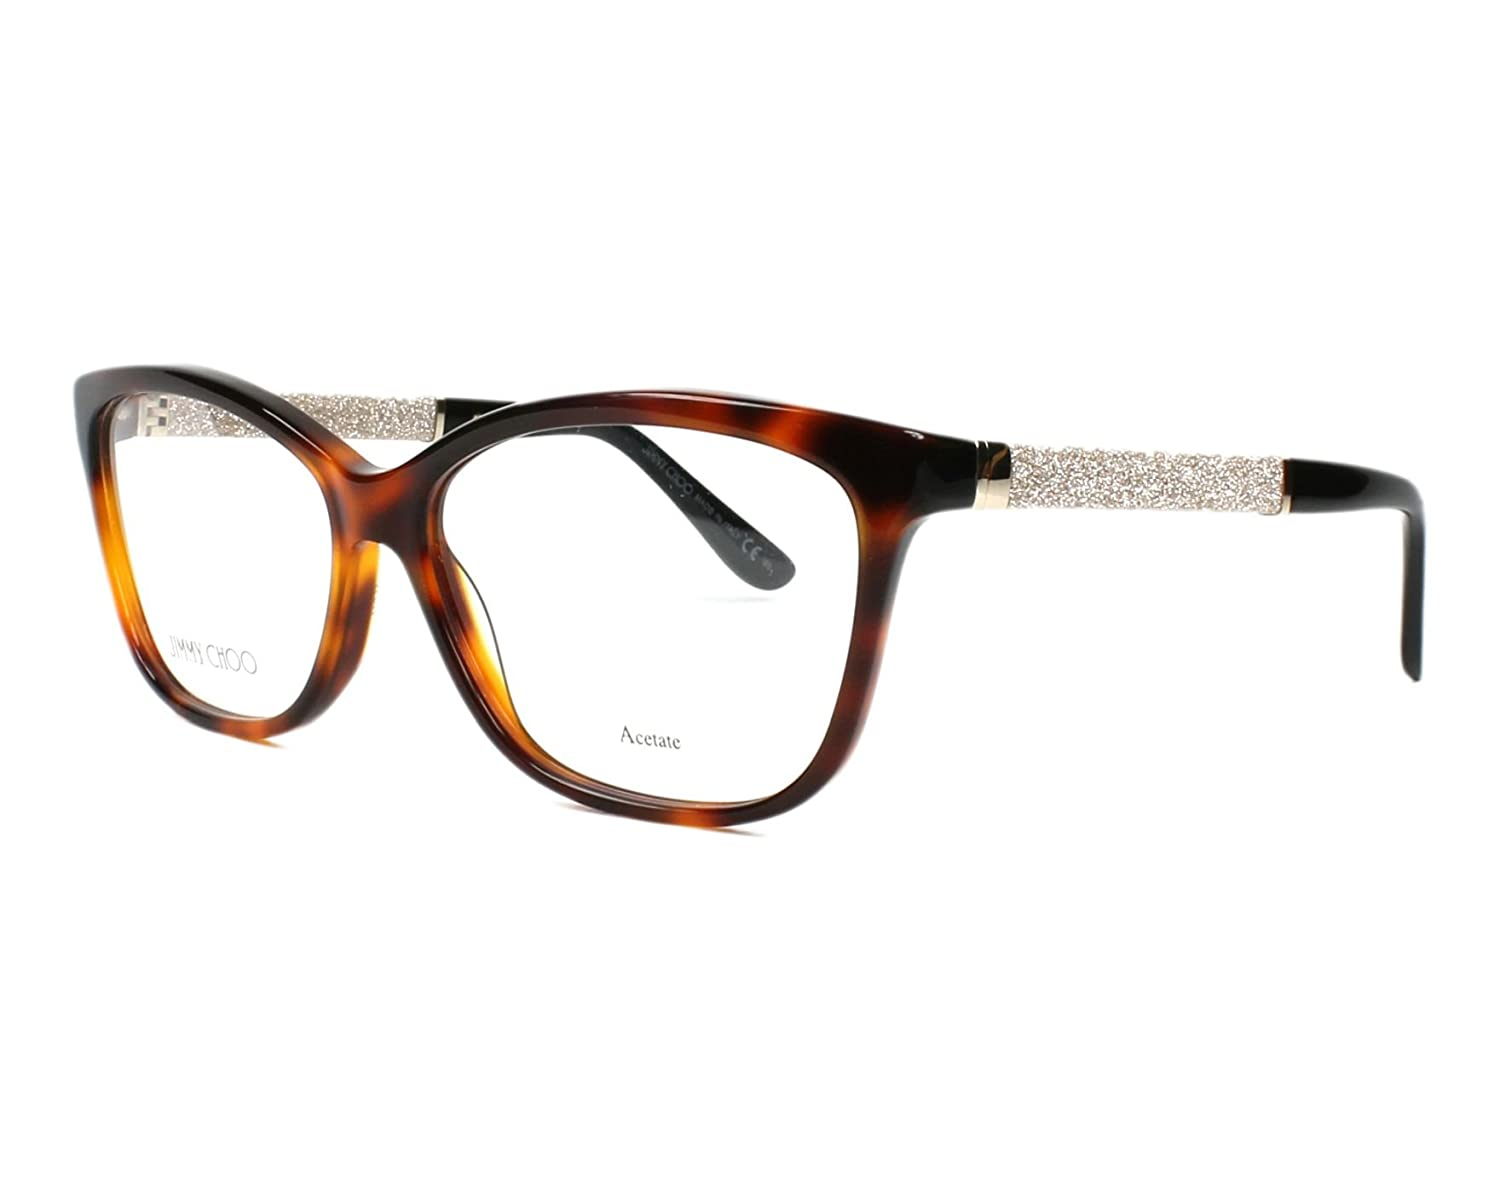 ef75ec9e8a0 Amazon.com  JIMMY CHOO Eyeglasses 105 0Inn Havana 55MM  Shoes